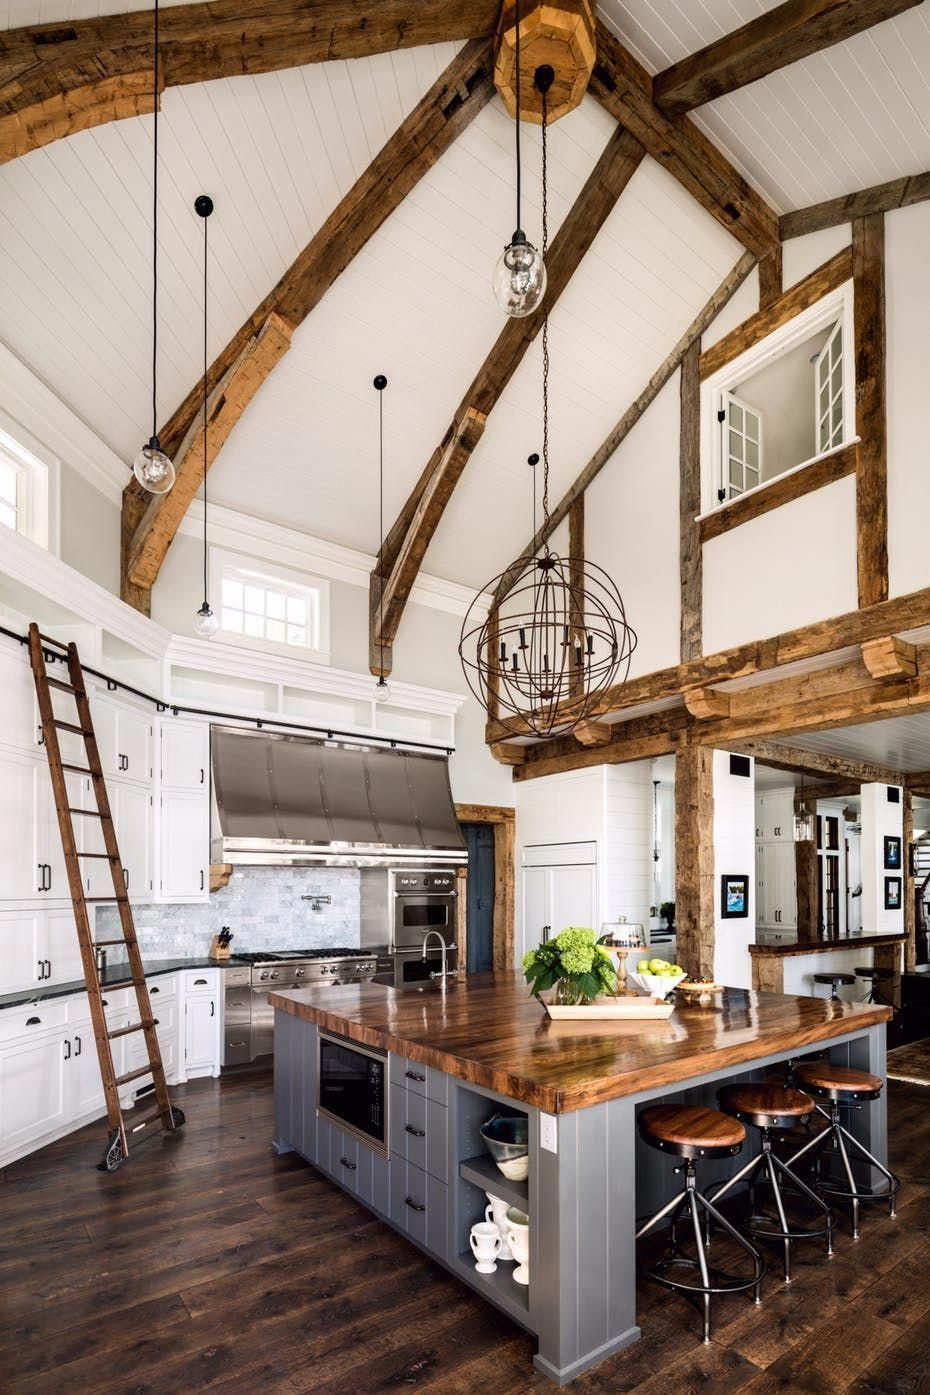 Are you looking for inspiration about Barndominium? CLICK here to get more than 100 pictures and ideas about Barndominium. barndominium floor plans, barndominium exterior, barndominium ideas barndominium floor plans 3 bedroom barndominium floor plans 30x40 barndominium floor plans 40x40 40x60 barndominium floor plans #barndominiumideas Are you looking for inspiration about Barndominium? CLICK here to get more than 100 pictures and ideas about Barndominium. barndominium floor plans, barndominium #barndominiumideas